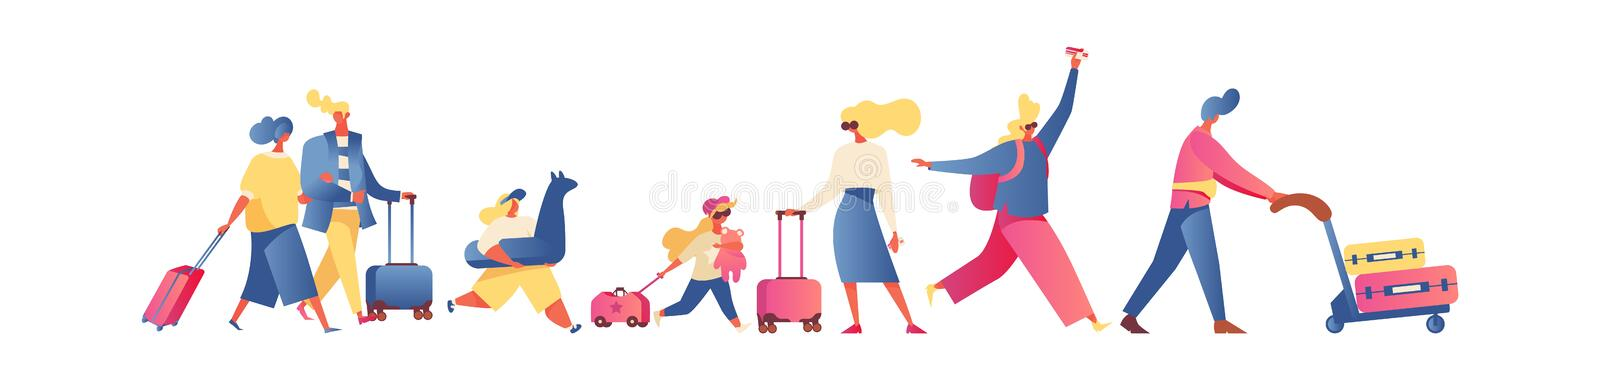 Flat people going on vacation, isolated on white. Families and kids, parents ans couples walking with luggage and trolley. Bright royalty free stock image